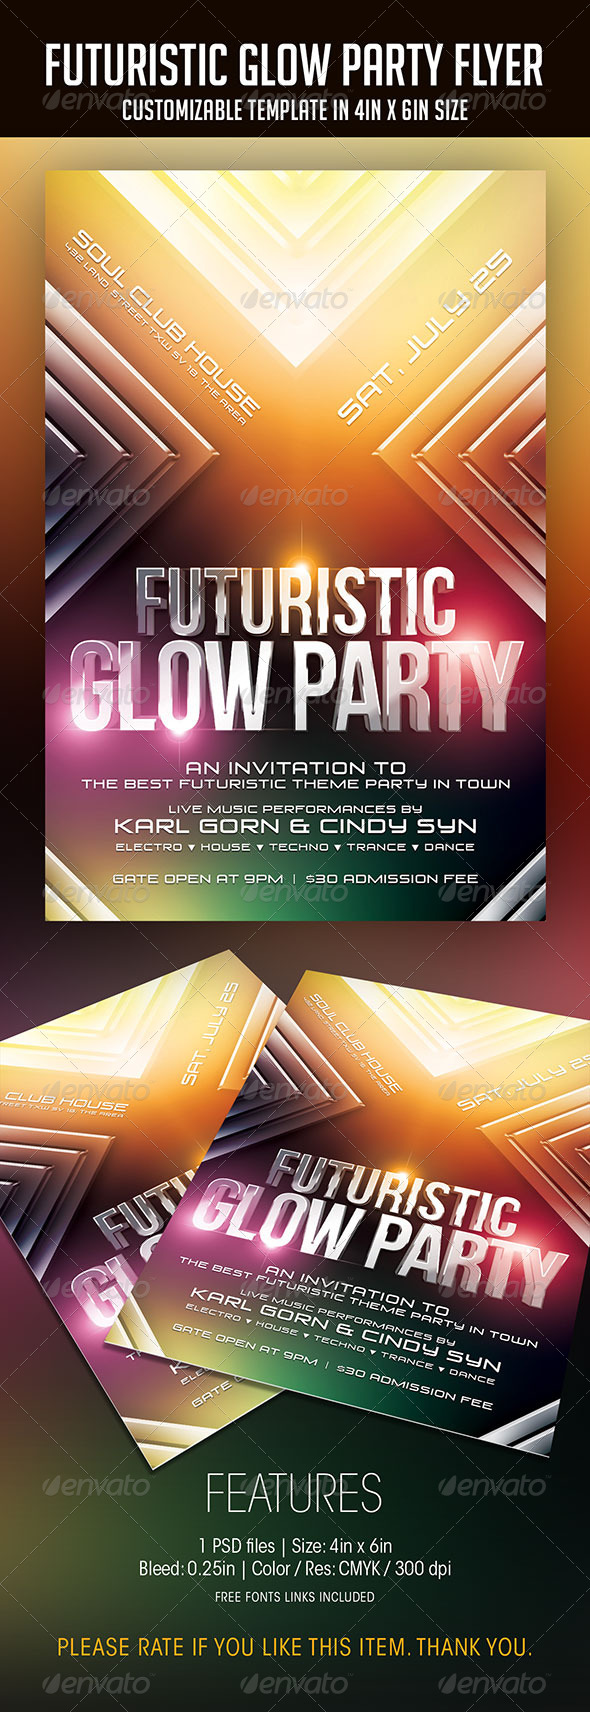 Futuristic Glow Party Flyer